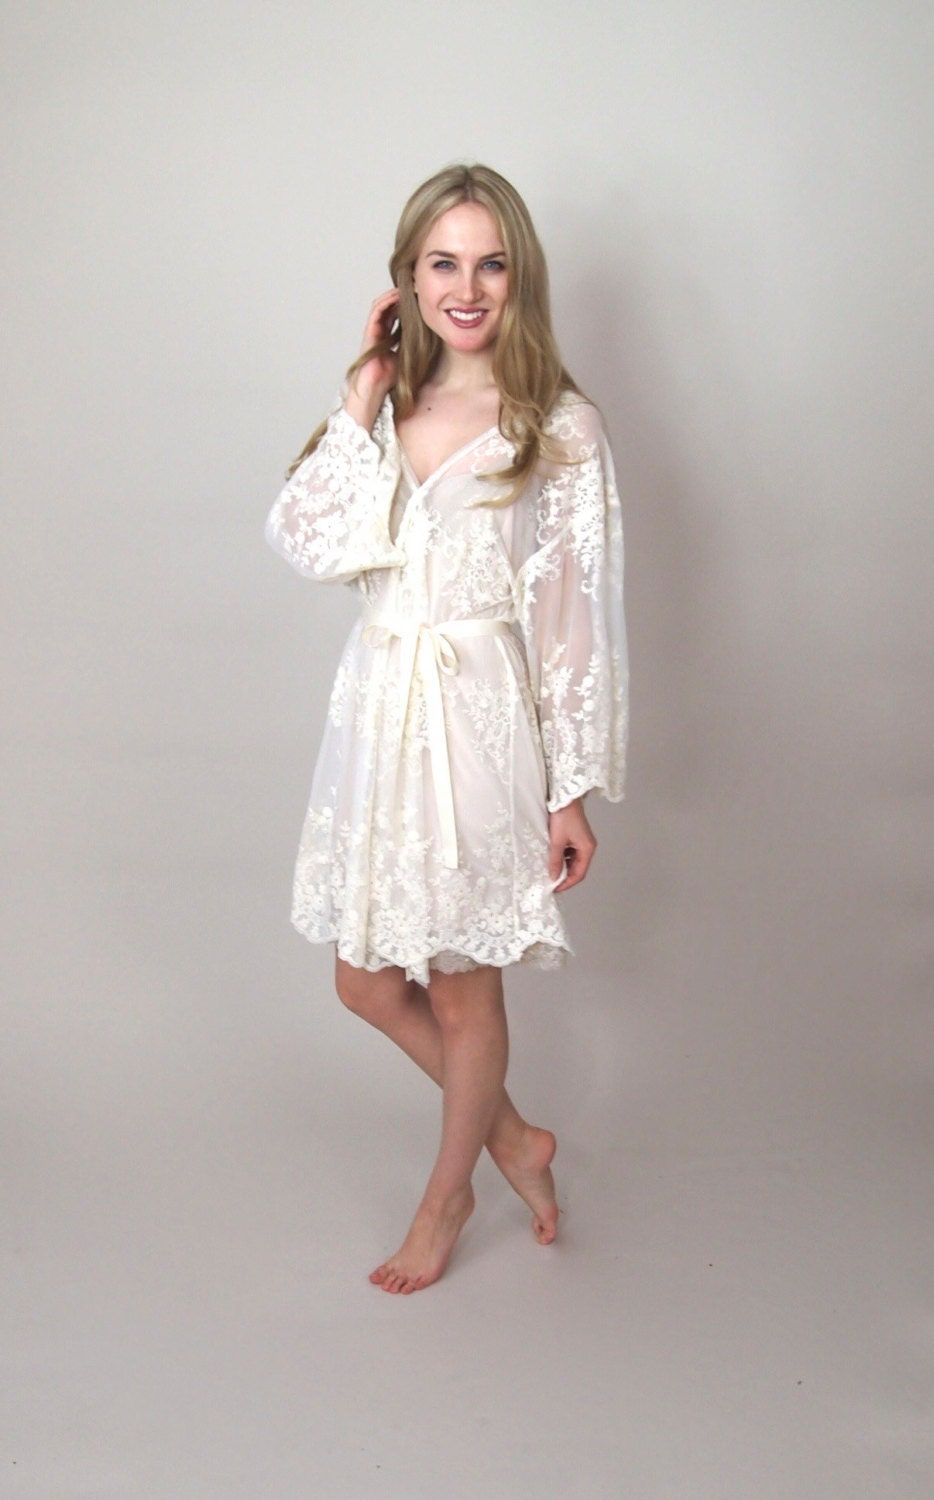 HELENA  Bride Robe  Guipiere lace lingerie kimono  bridal dressing gown  trousseau  lingerie  honeymoon lingerie  lace